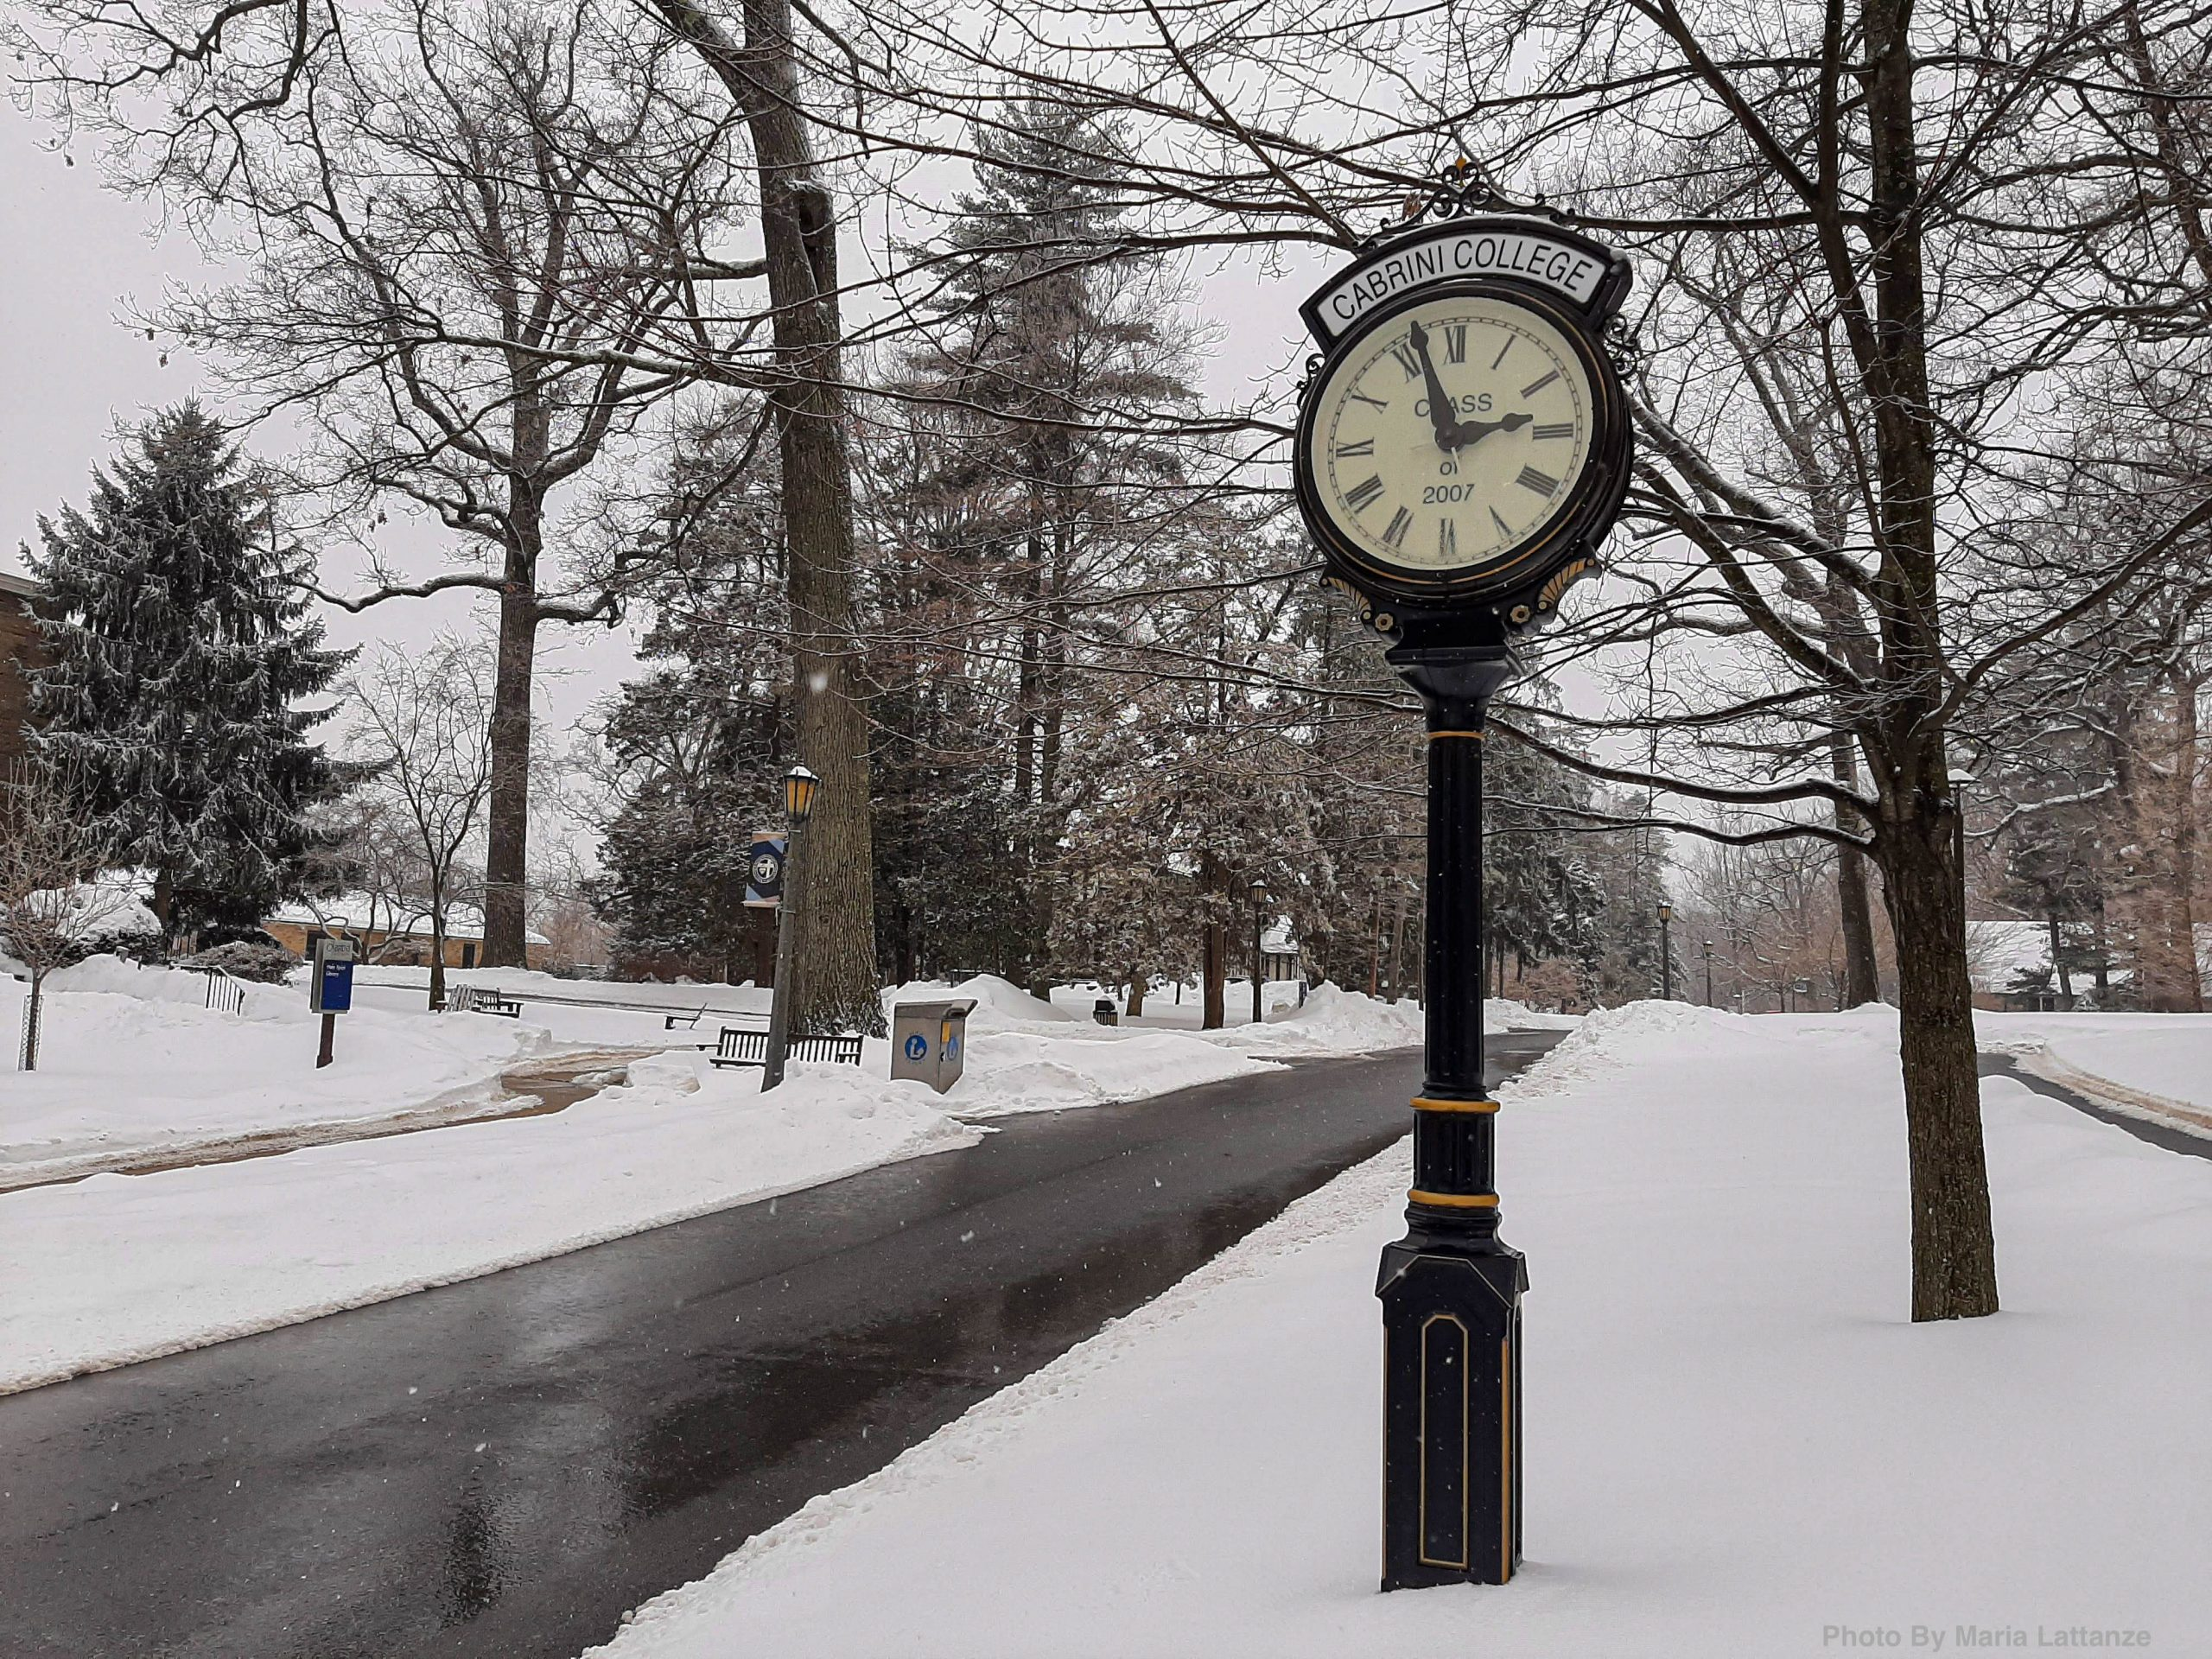 College students take advantage of virtual online learning during snow days